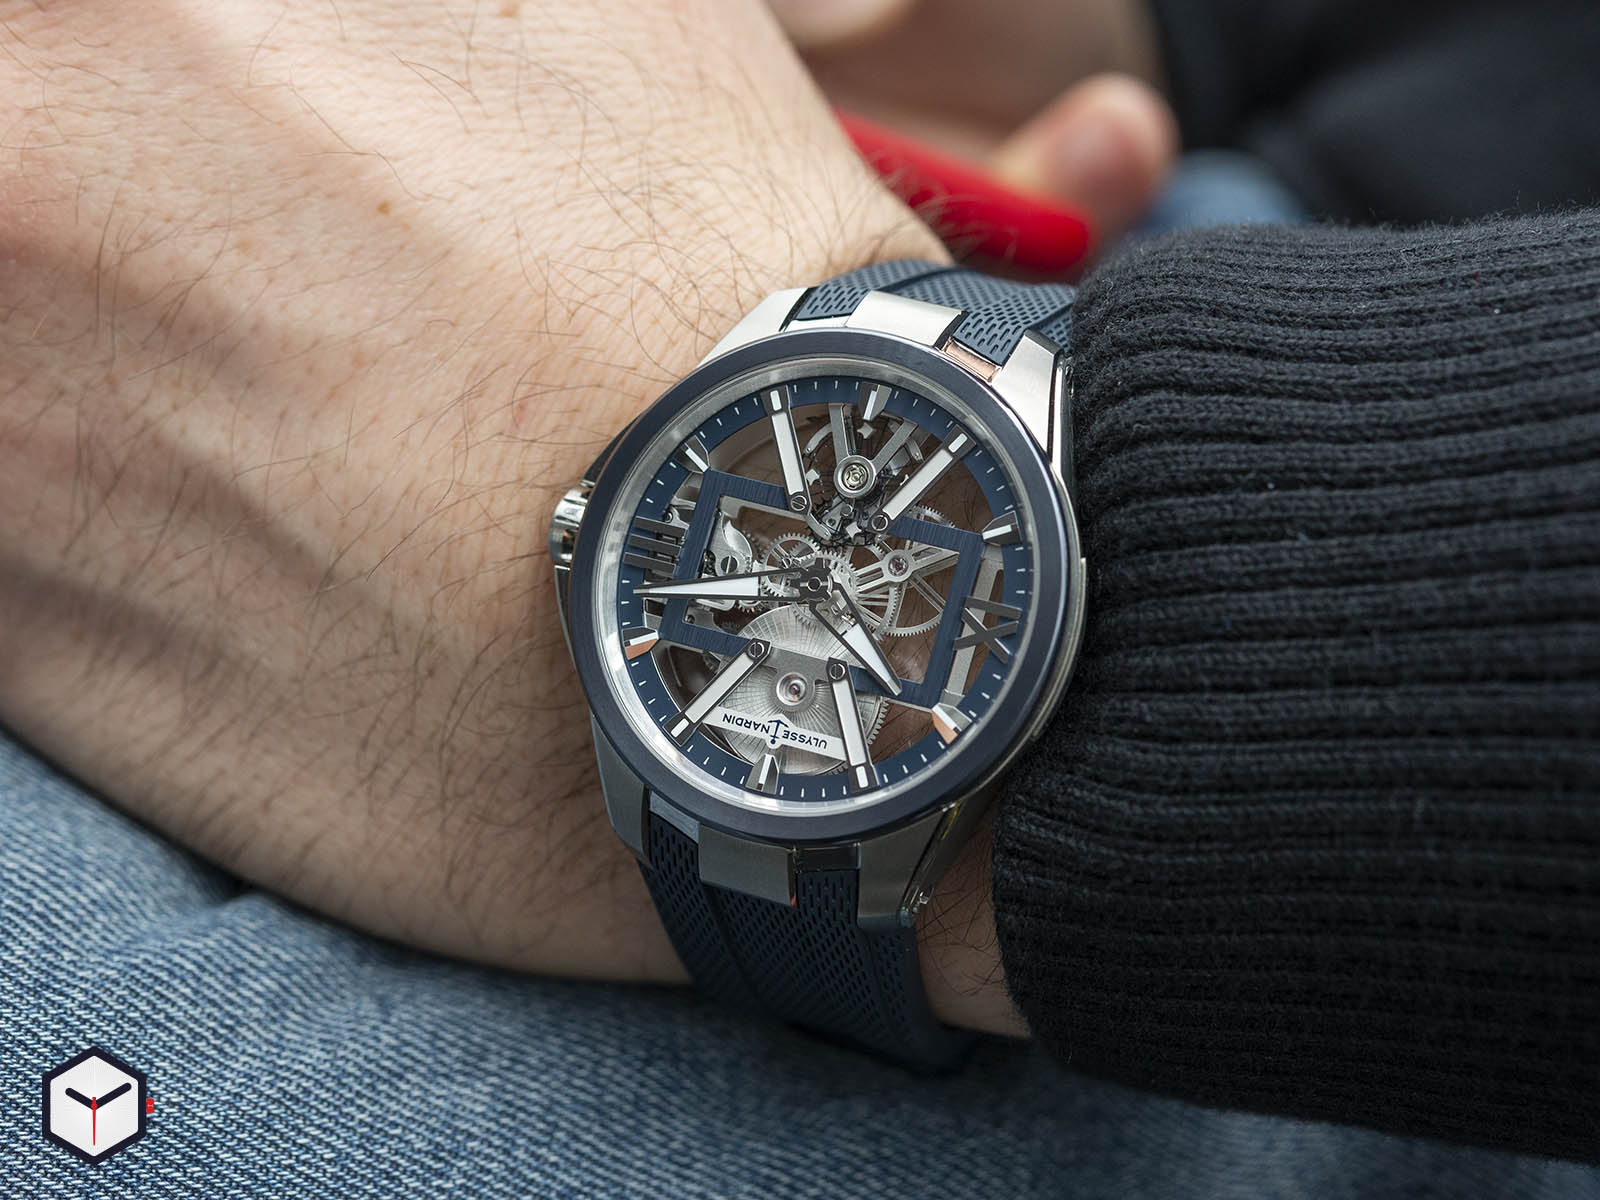 93713-260-3-03-ulysse-nardin-executive-skeleton-x-8.jpg